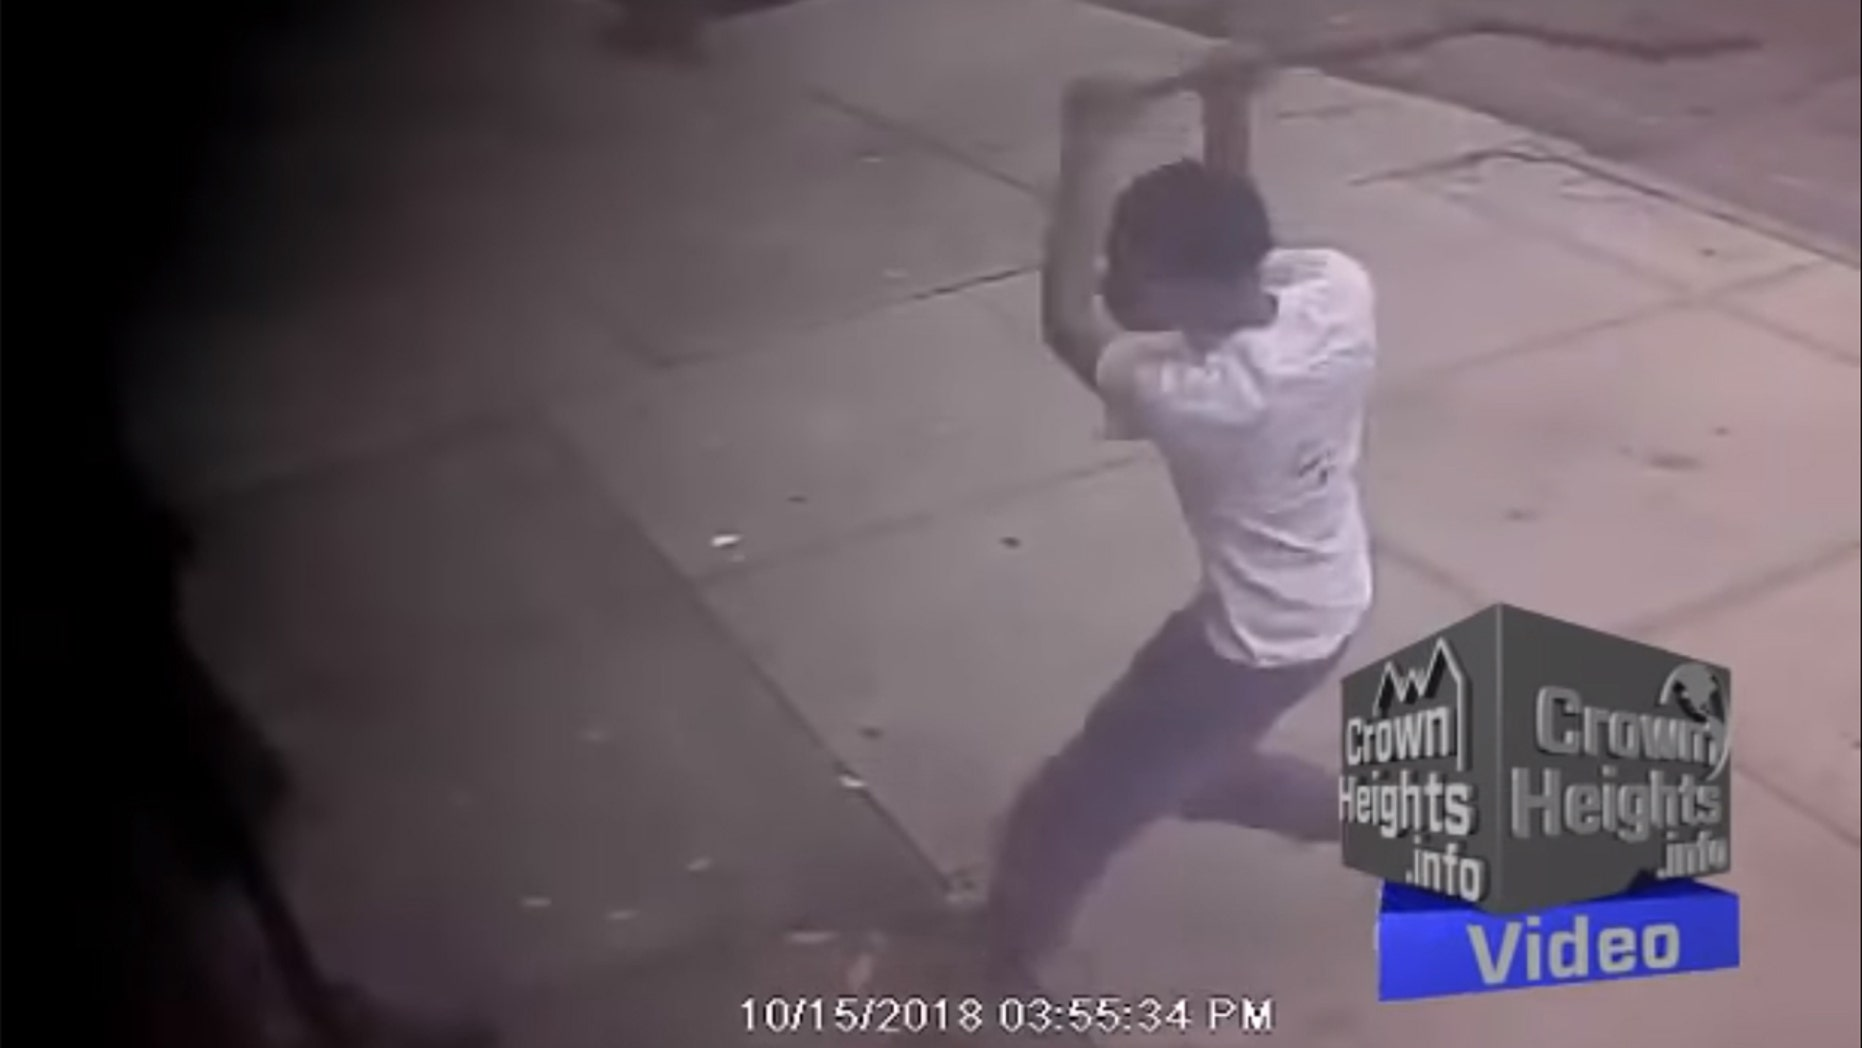 This surveillance photo shows an unidentified teenager attacking a Jewish man in a Brooklyn neighborhood.